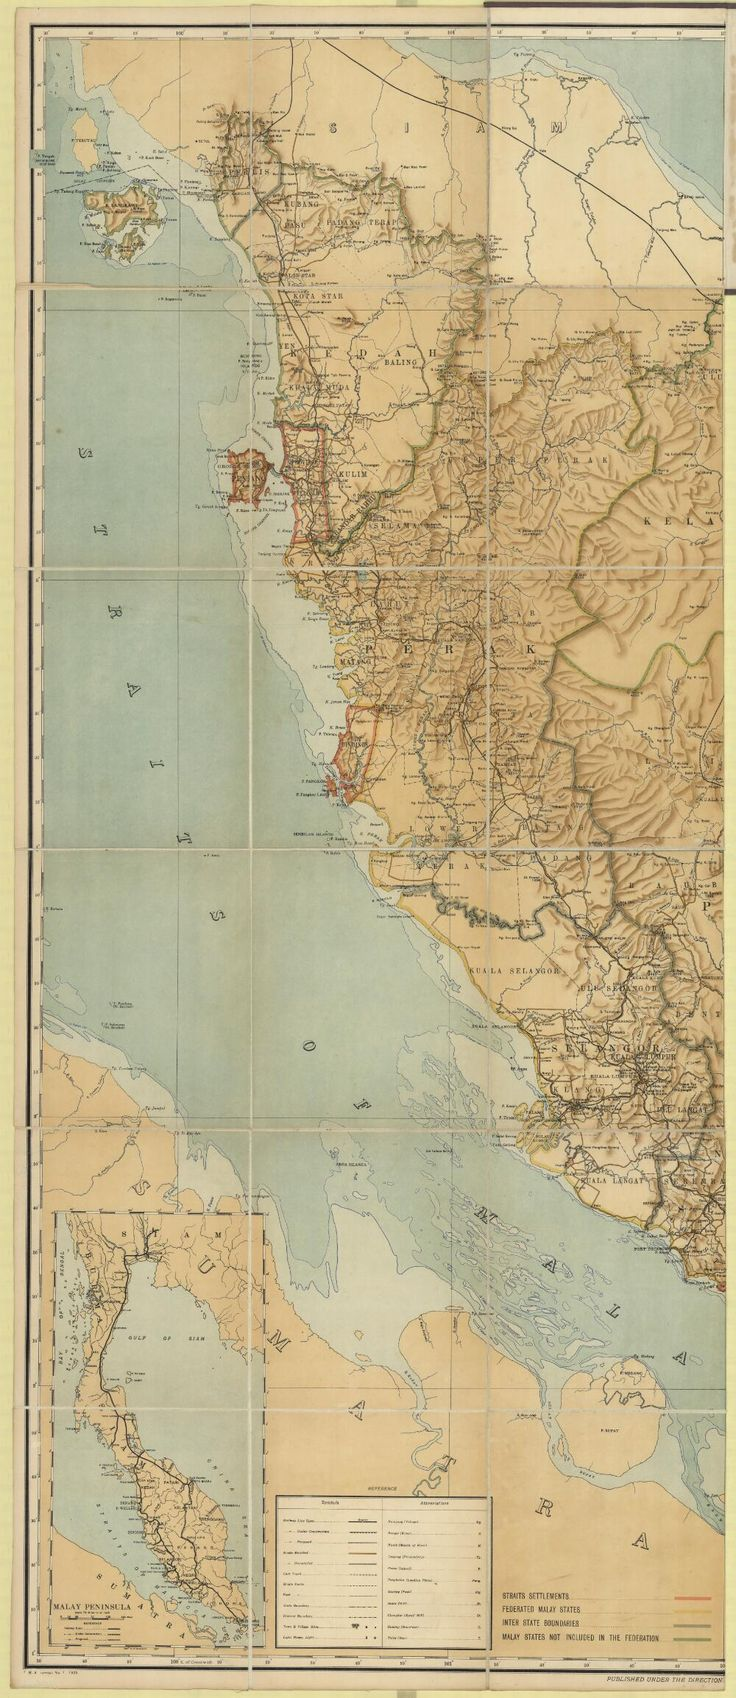 Federated Malay States. Survey Department, cartographer. Map of British Malaya including the Straits settlements, Federated Malay States and Malay States not included in the Federation 1922.